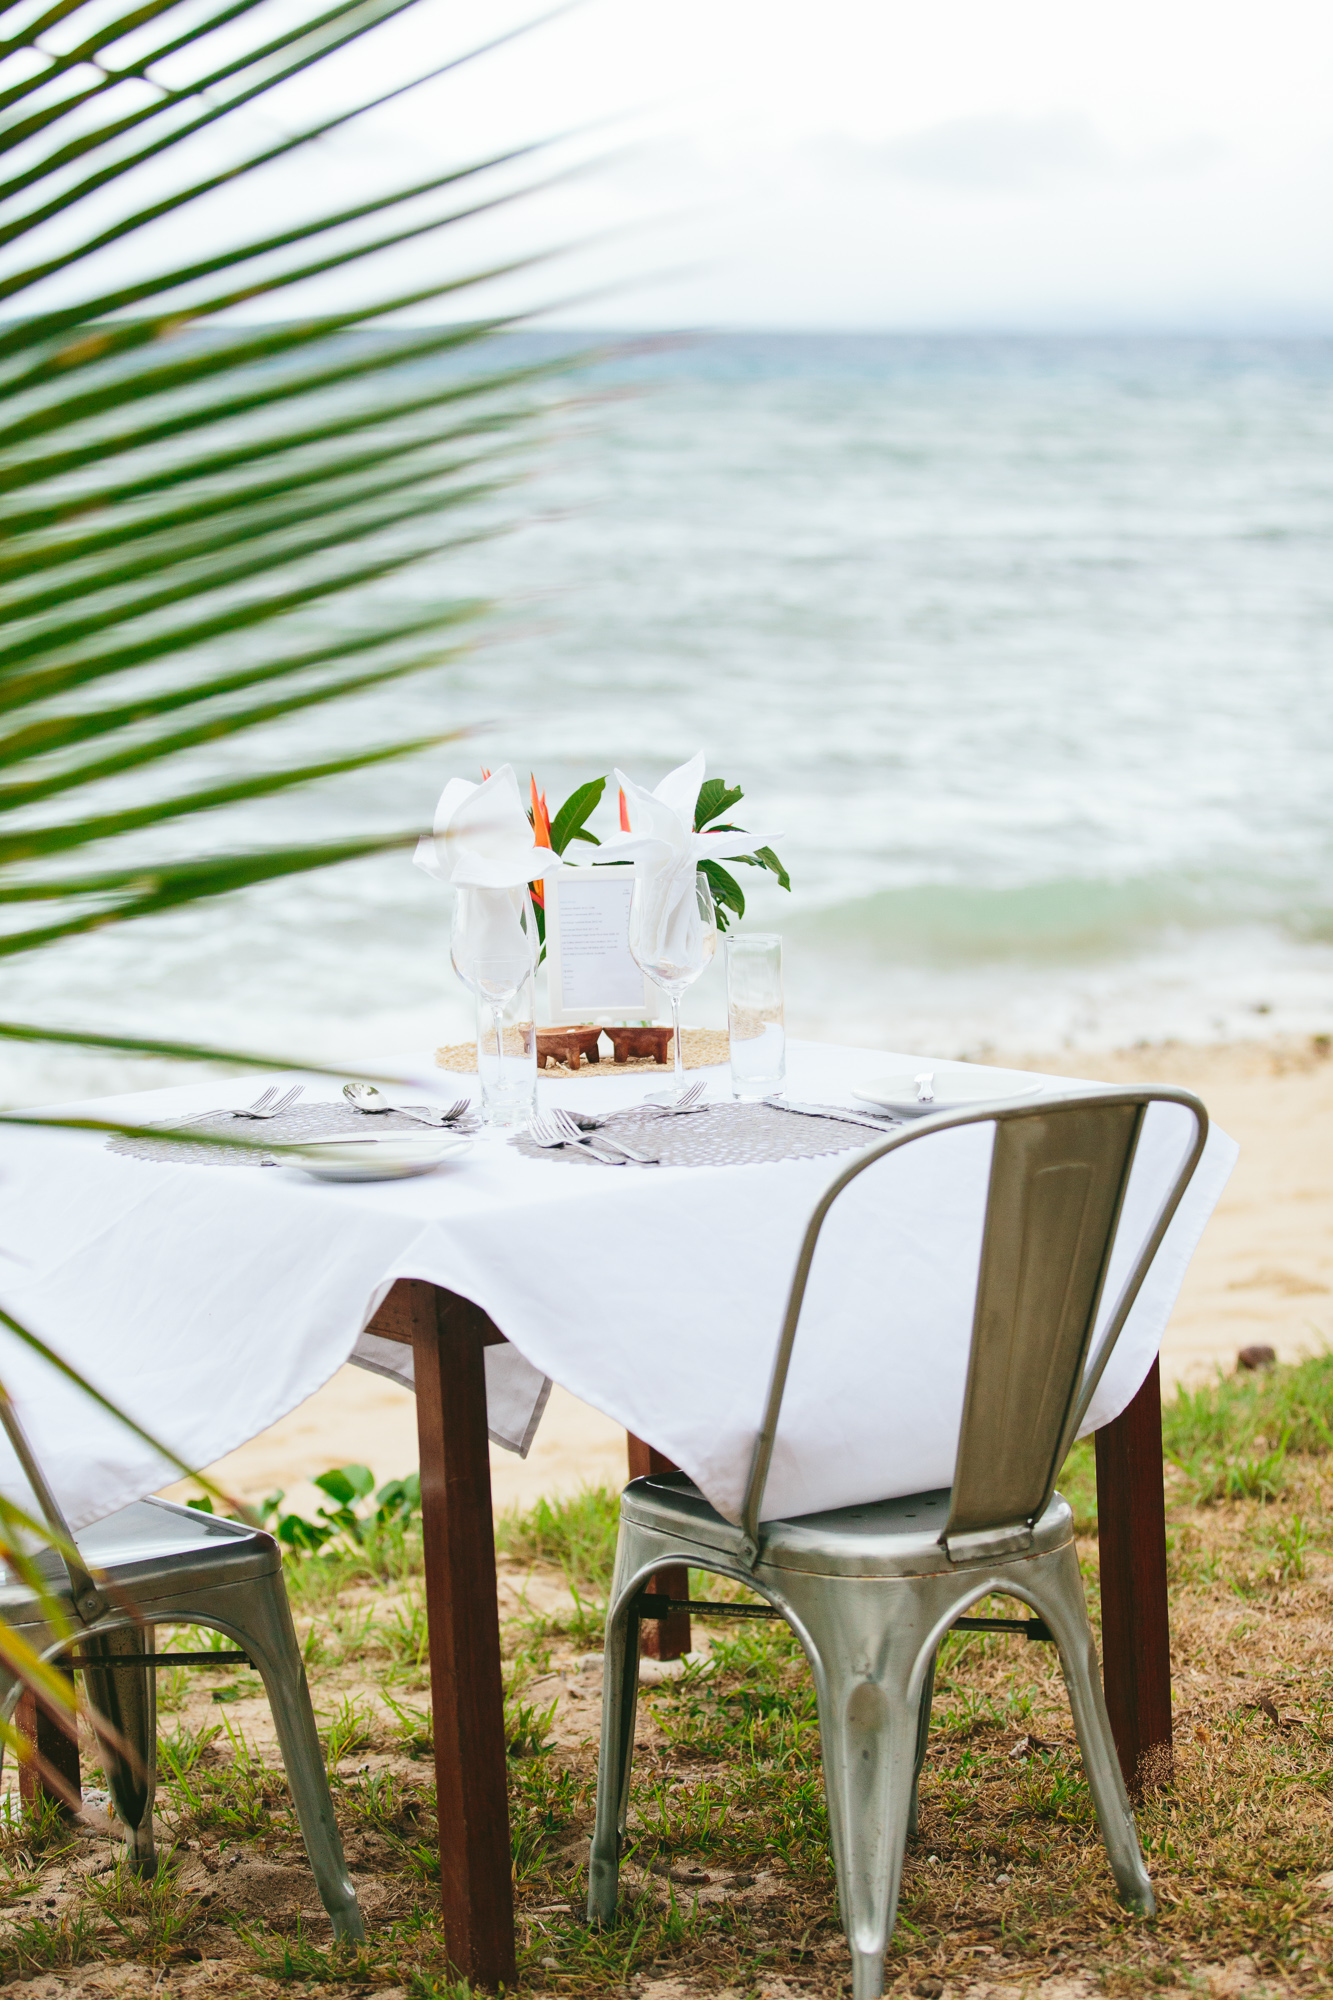 Lunch on the beach - The Remote Resort - Fiji Resort